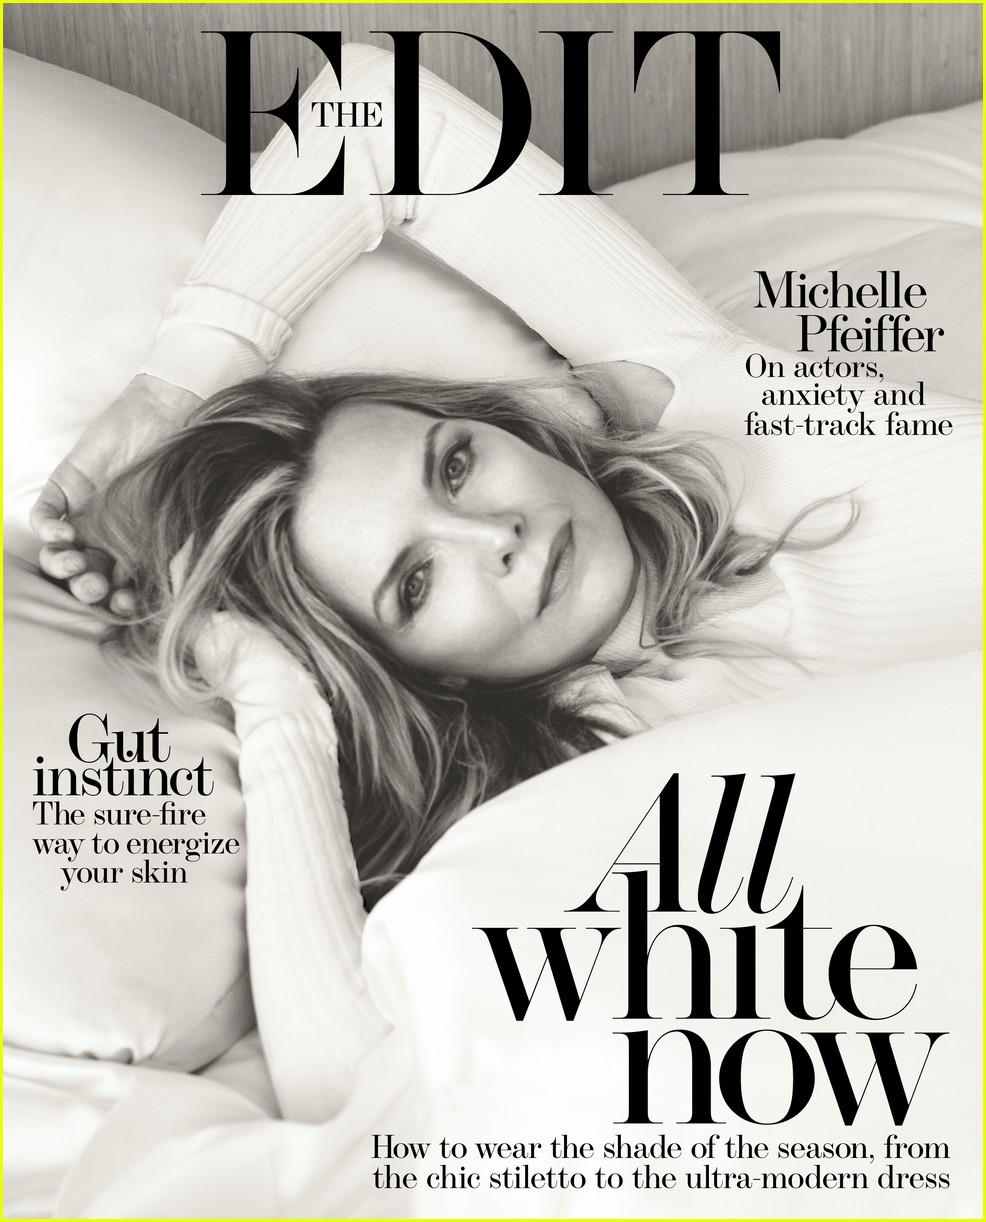 michelle pfeiffer the edit 013971494